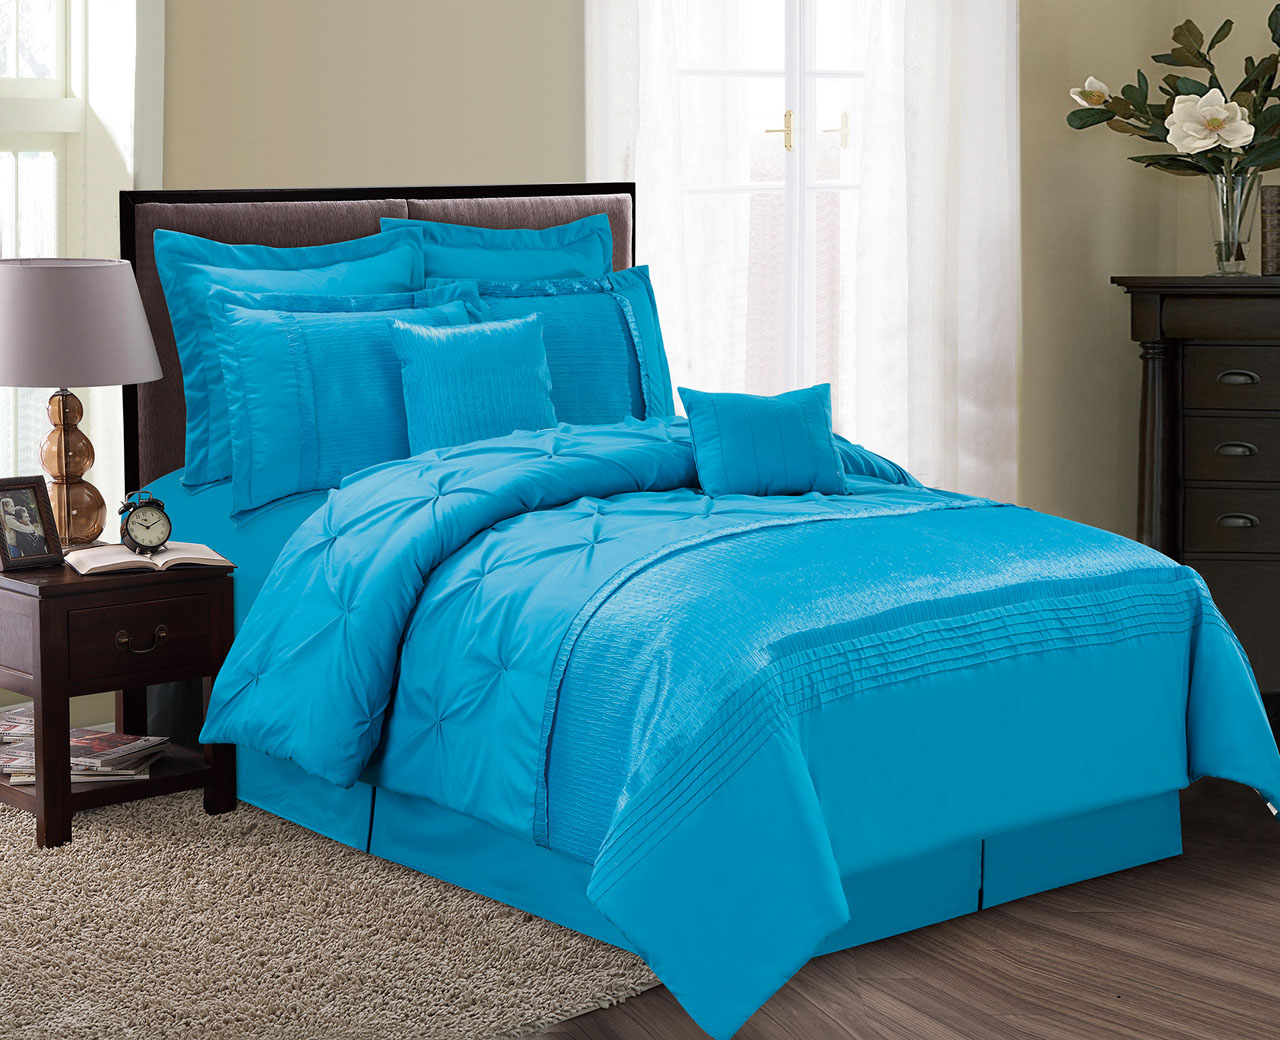 12 Piece Aubree Pinched Pleat Ocean Blue Bed In A Bag Set